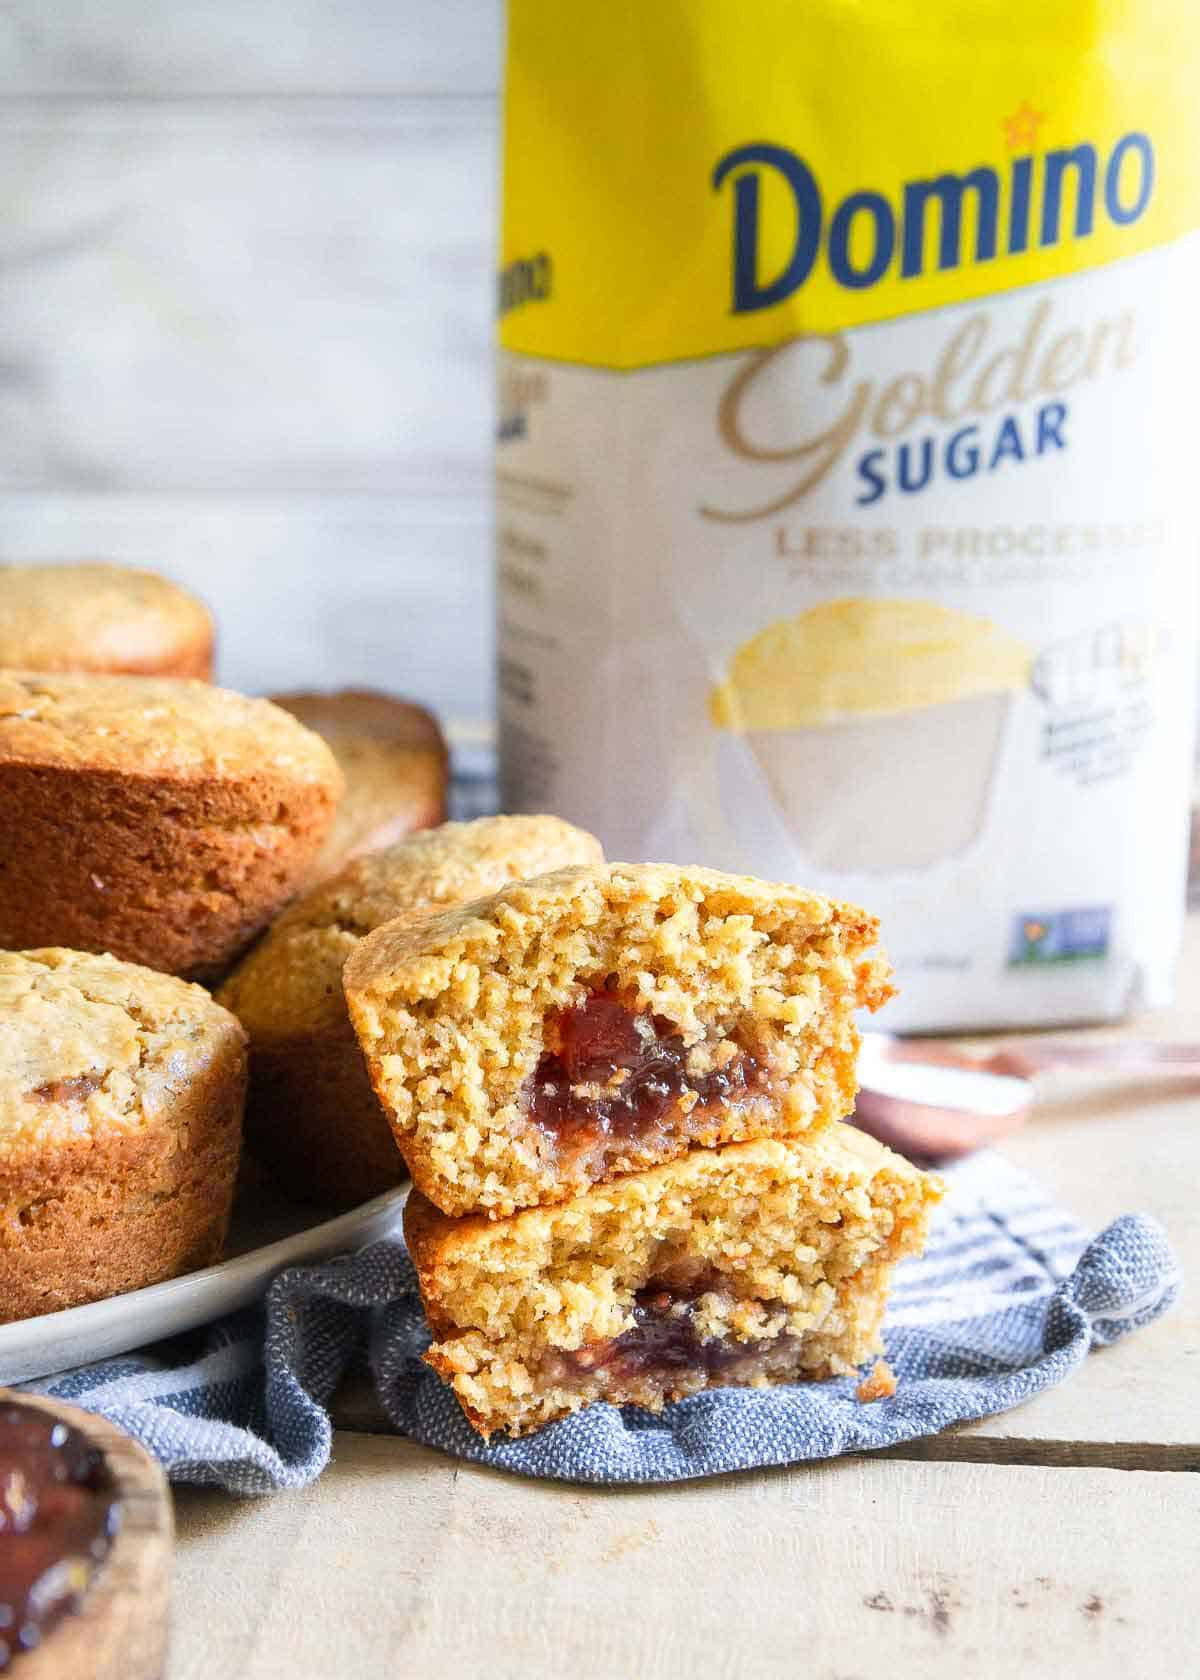 Kids and adults will both love these delicious peanut butter jelly muffins with their fun surprise center!